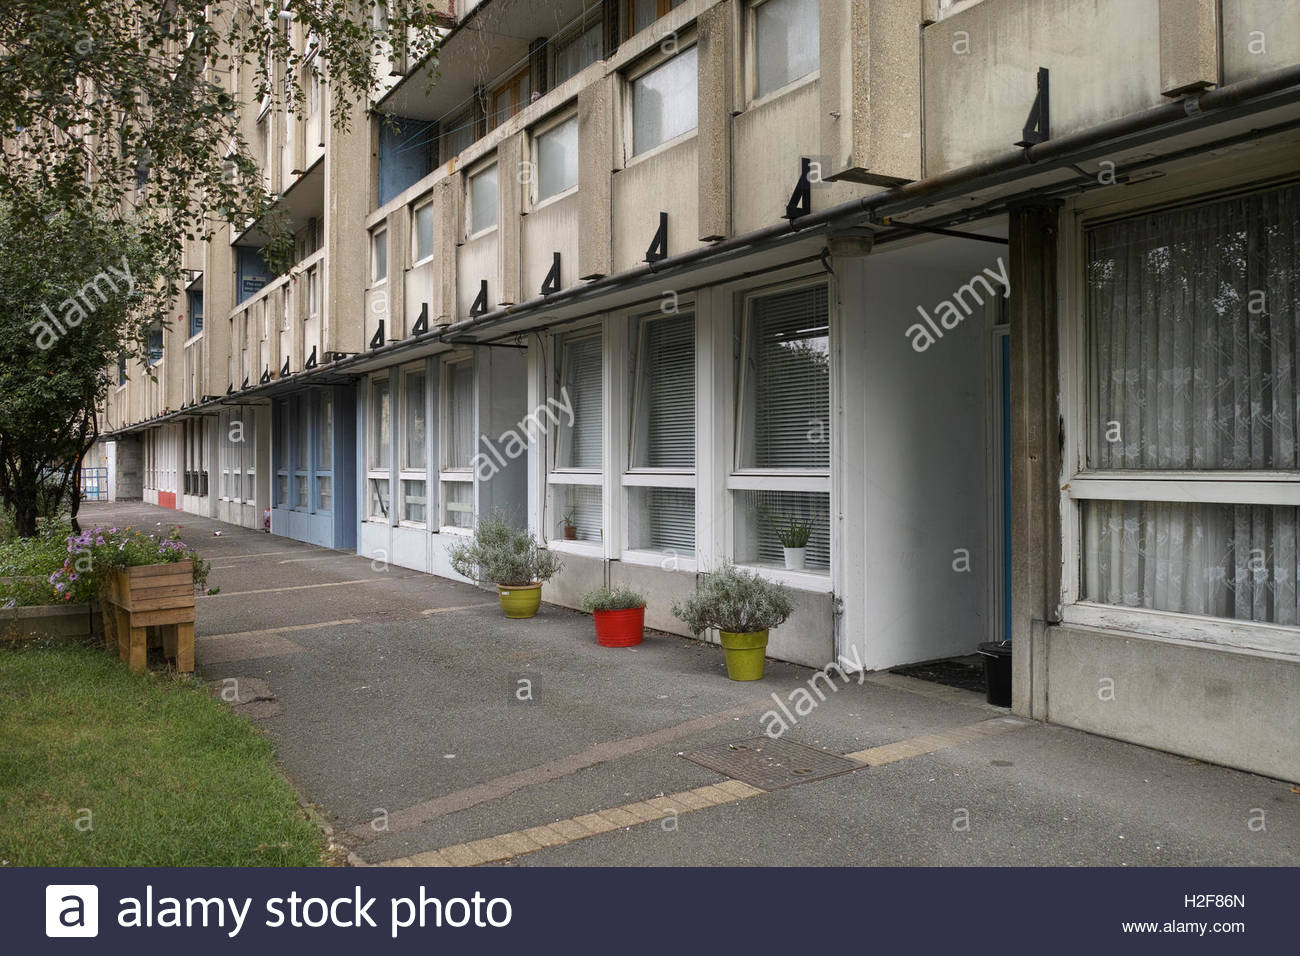 Plant pots outside ground floor flats in Robin Hood Gardens Estate: Poplar, London. Stock Photo